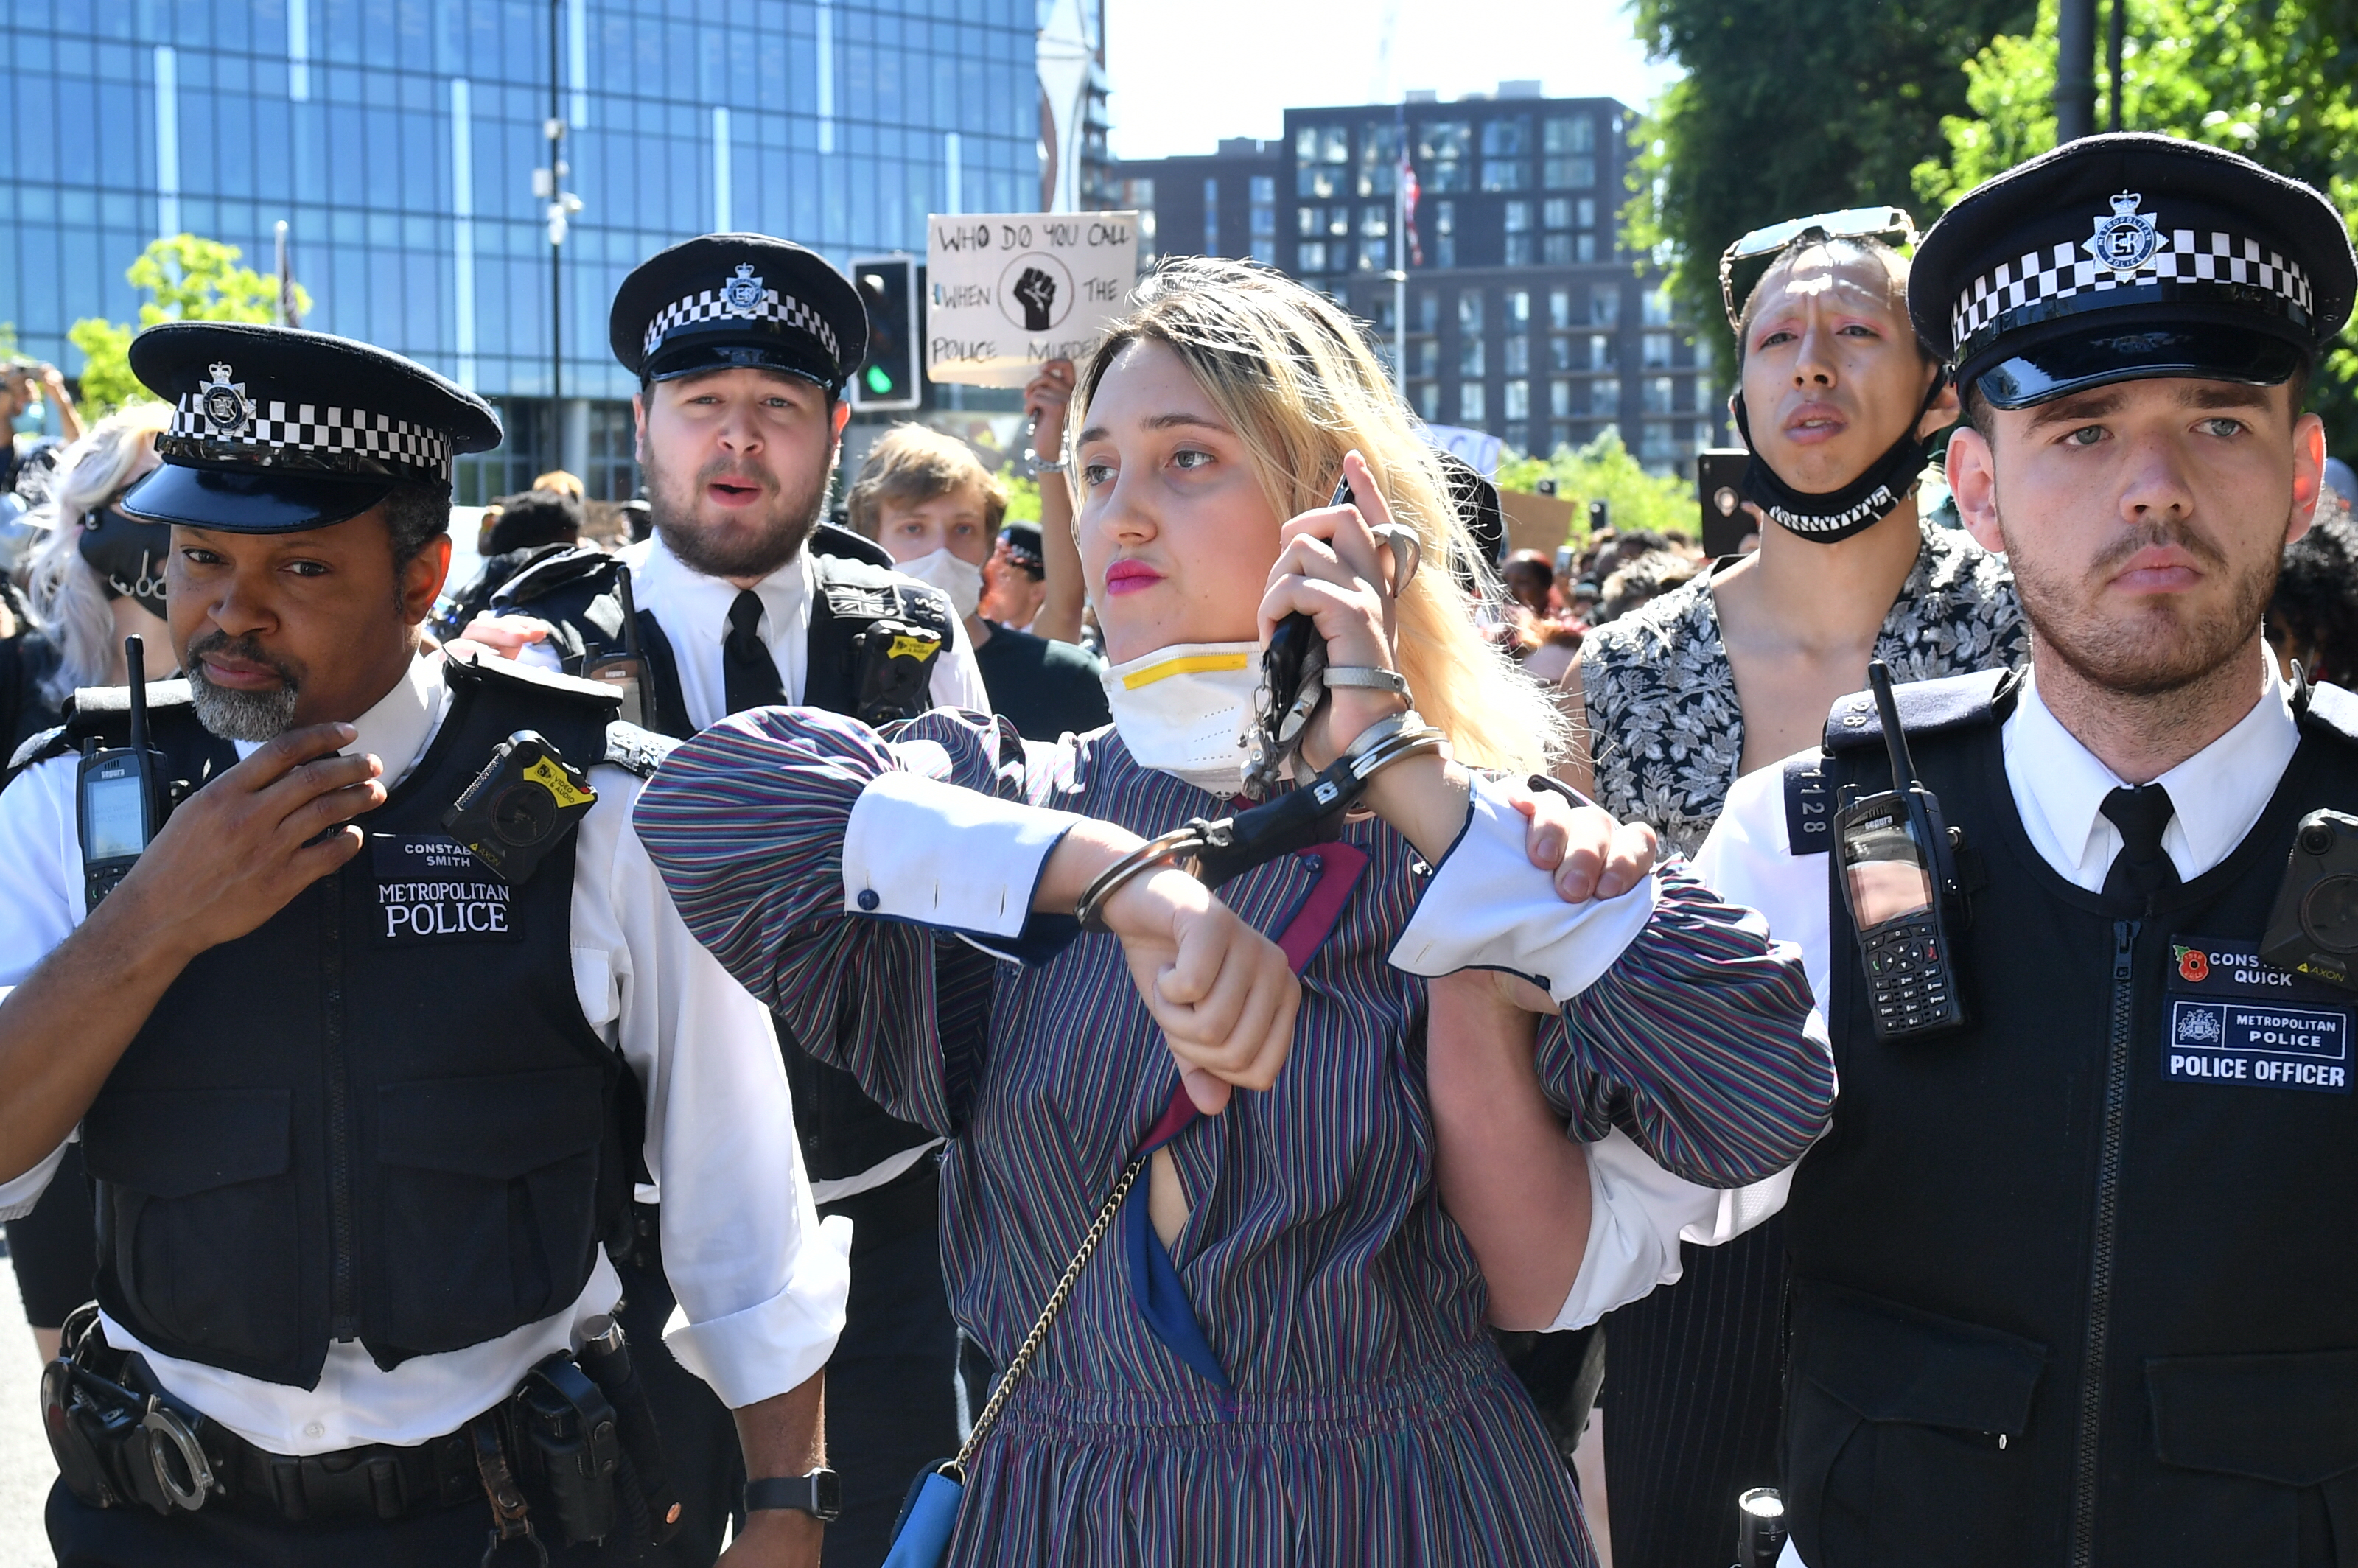 A woman is led away by police during a Black Lives Matter protest outside the US Embassy in London. The protest follows the death of George Floyd in Minneapolis, US, this week which has seen a police officer charged with third-degree murder. (Photo by Dominic Lipinski/PA Images via Getty Images)